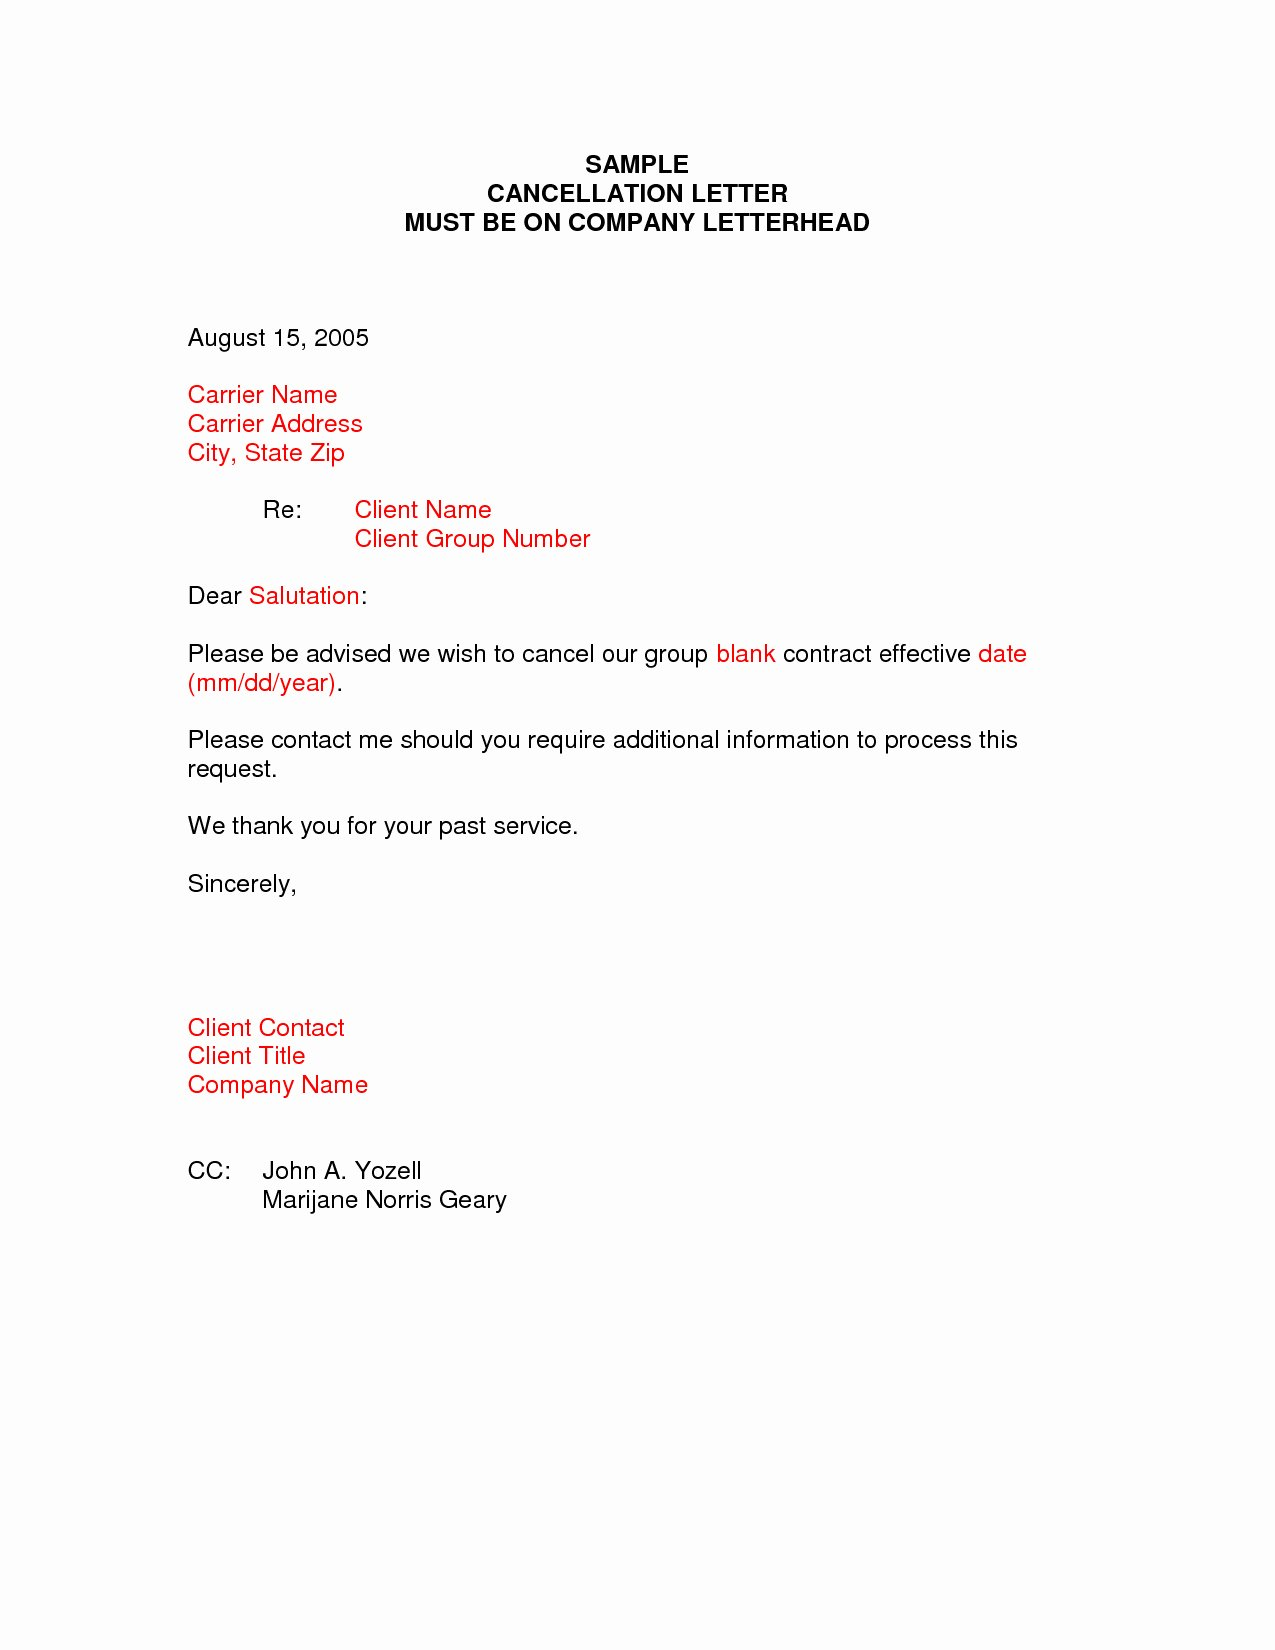 Cancel Timeshare Contract Sample Letter Fresh Timeshare Cancellation Letter Template Samples